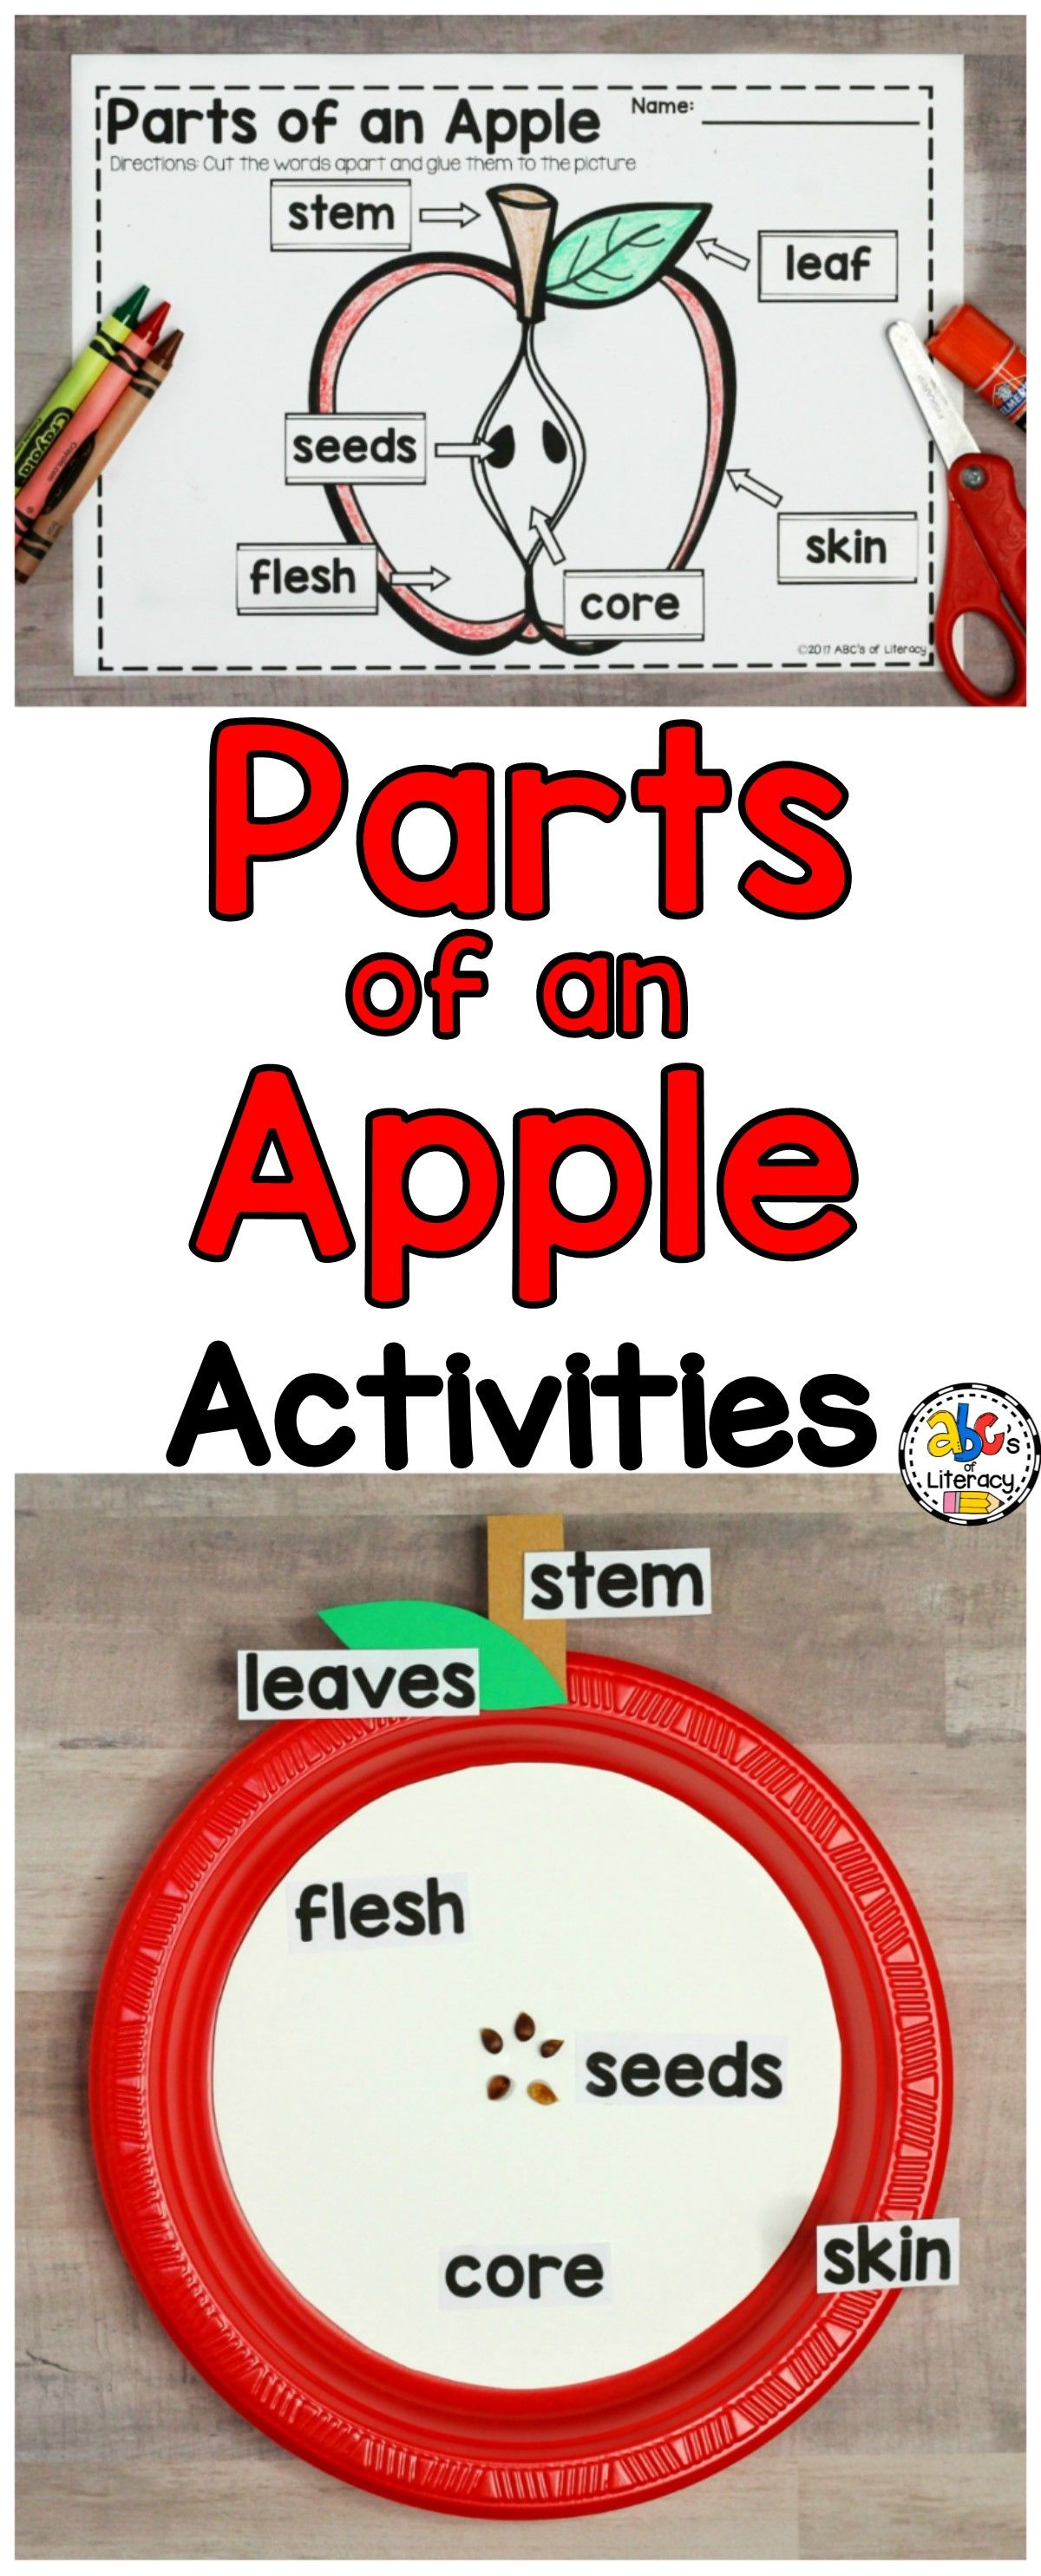 Parts Of An Apple Activities